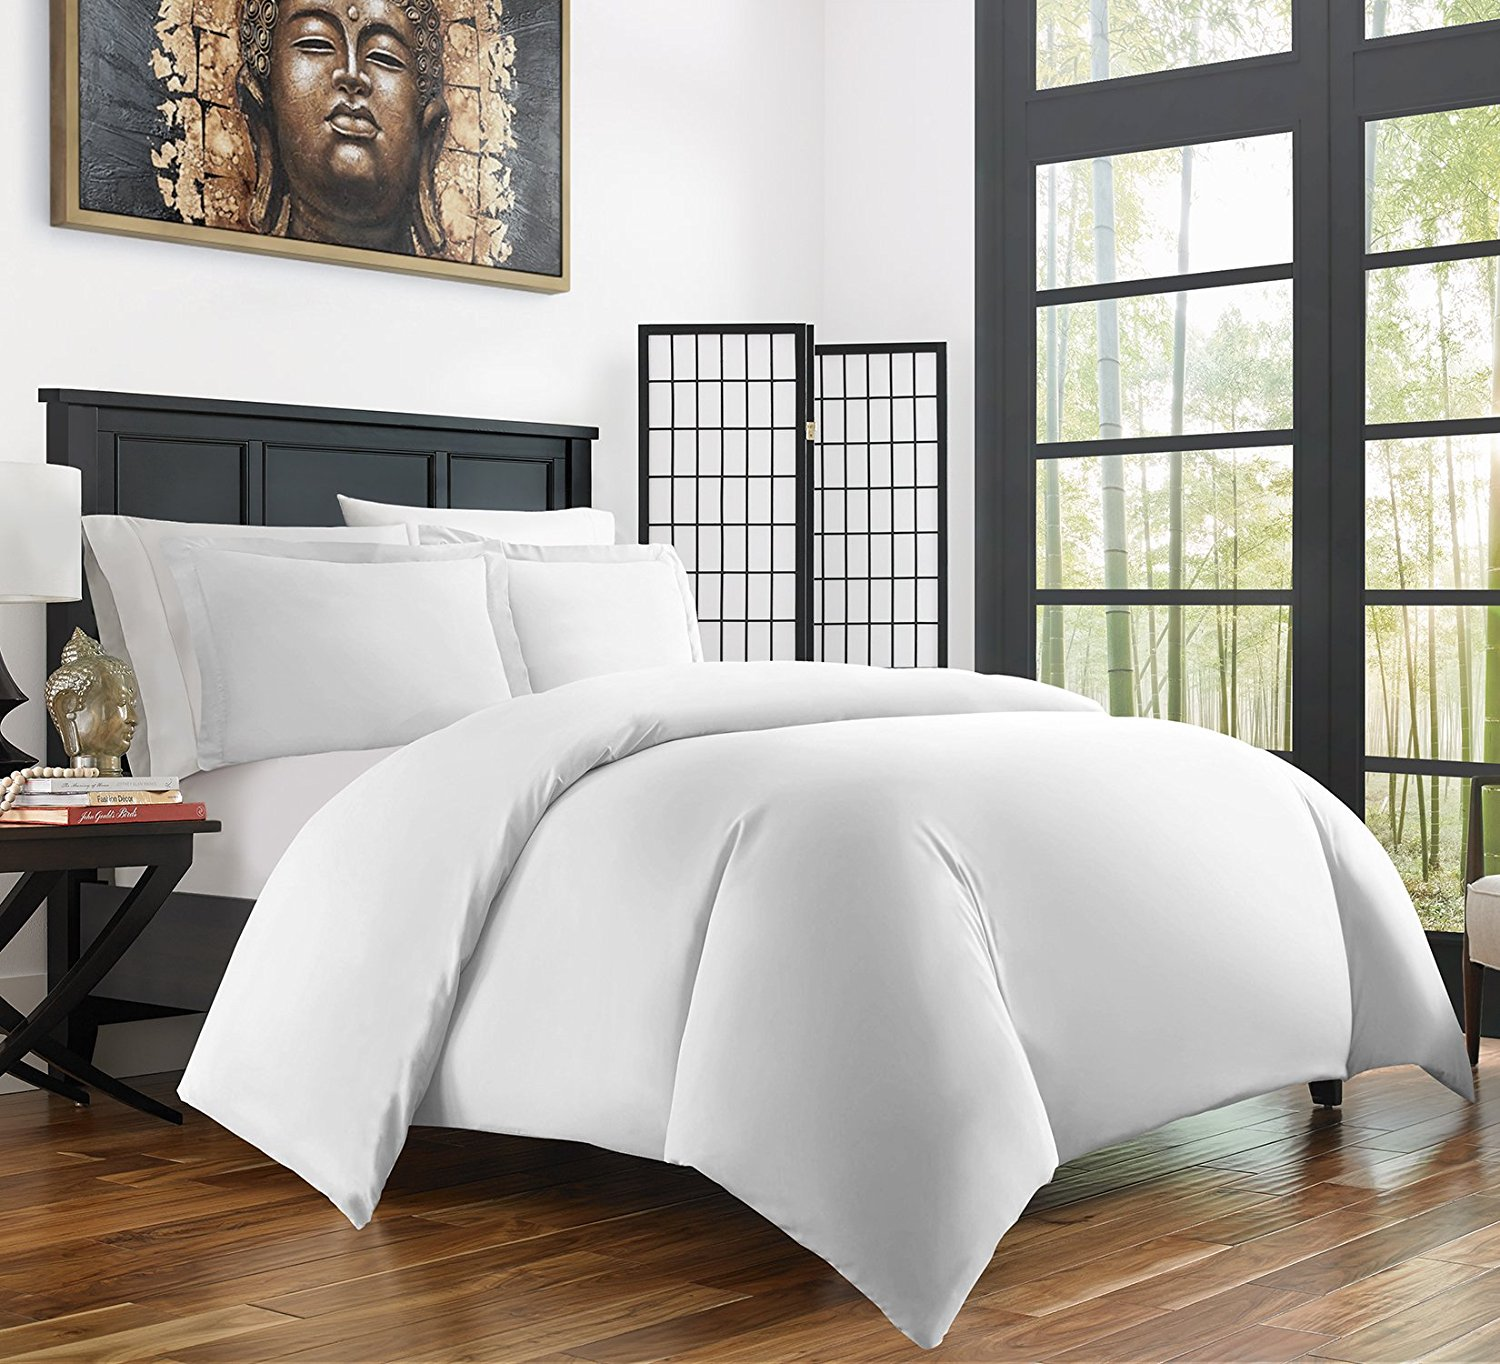 Zen Bamboo Ultra Soft 3-Piece BambooTwin/Twin XLDuvet Cover Set -Hypoallergenic and Wrinkle Resistant, White